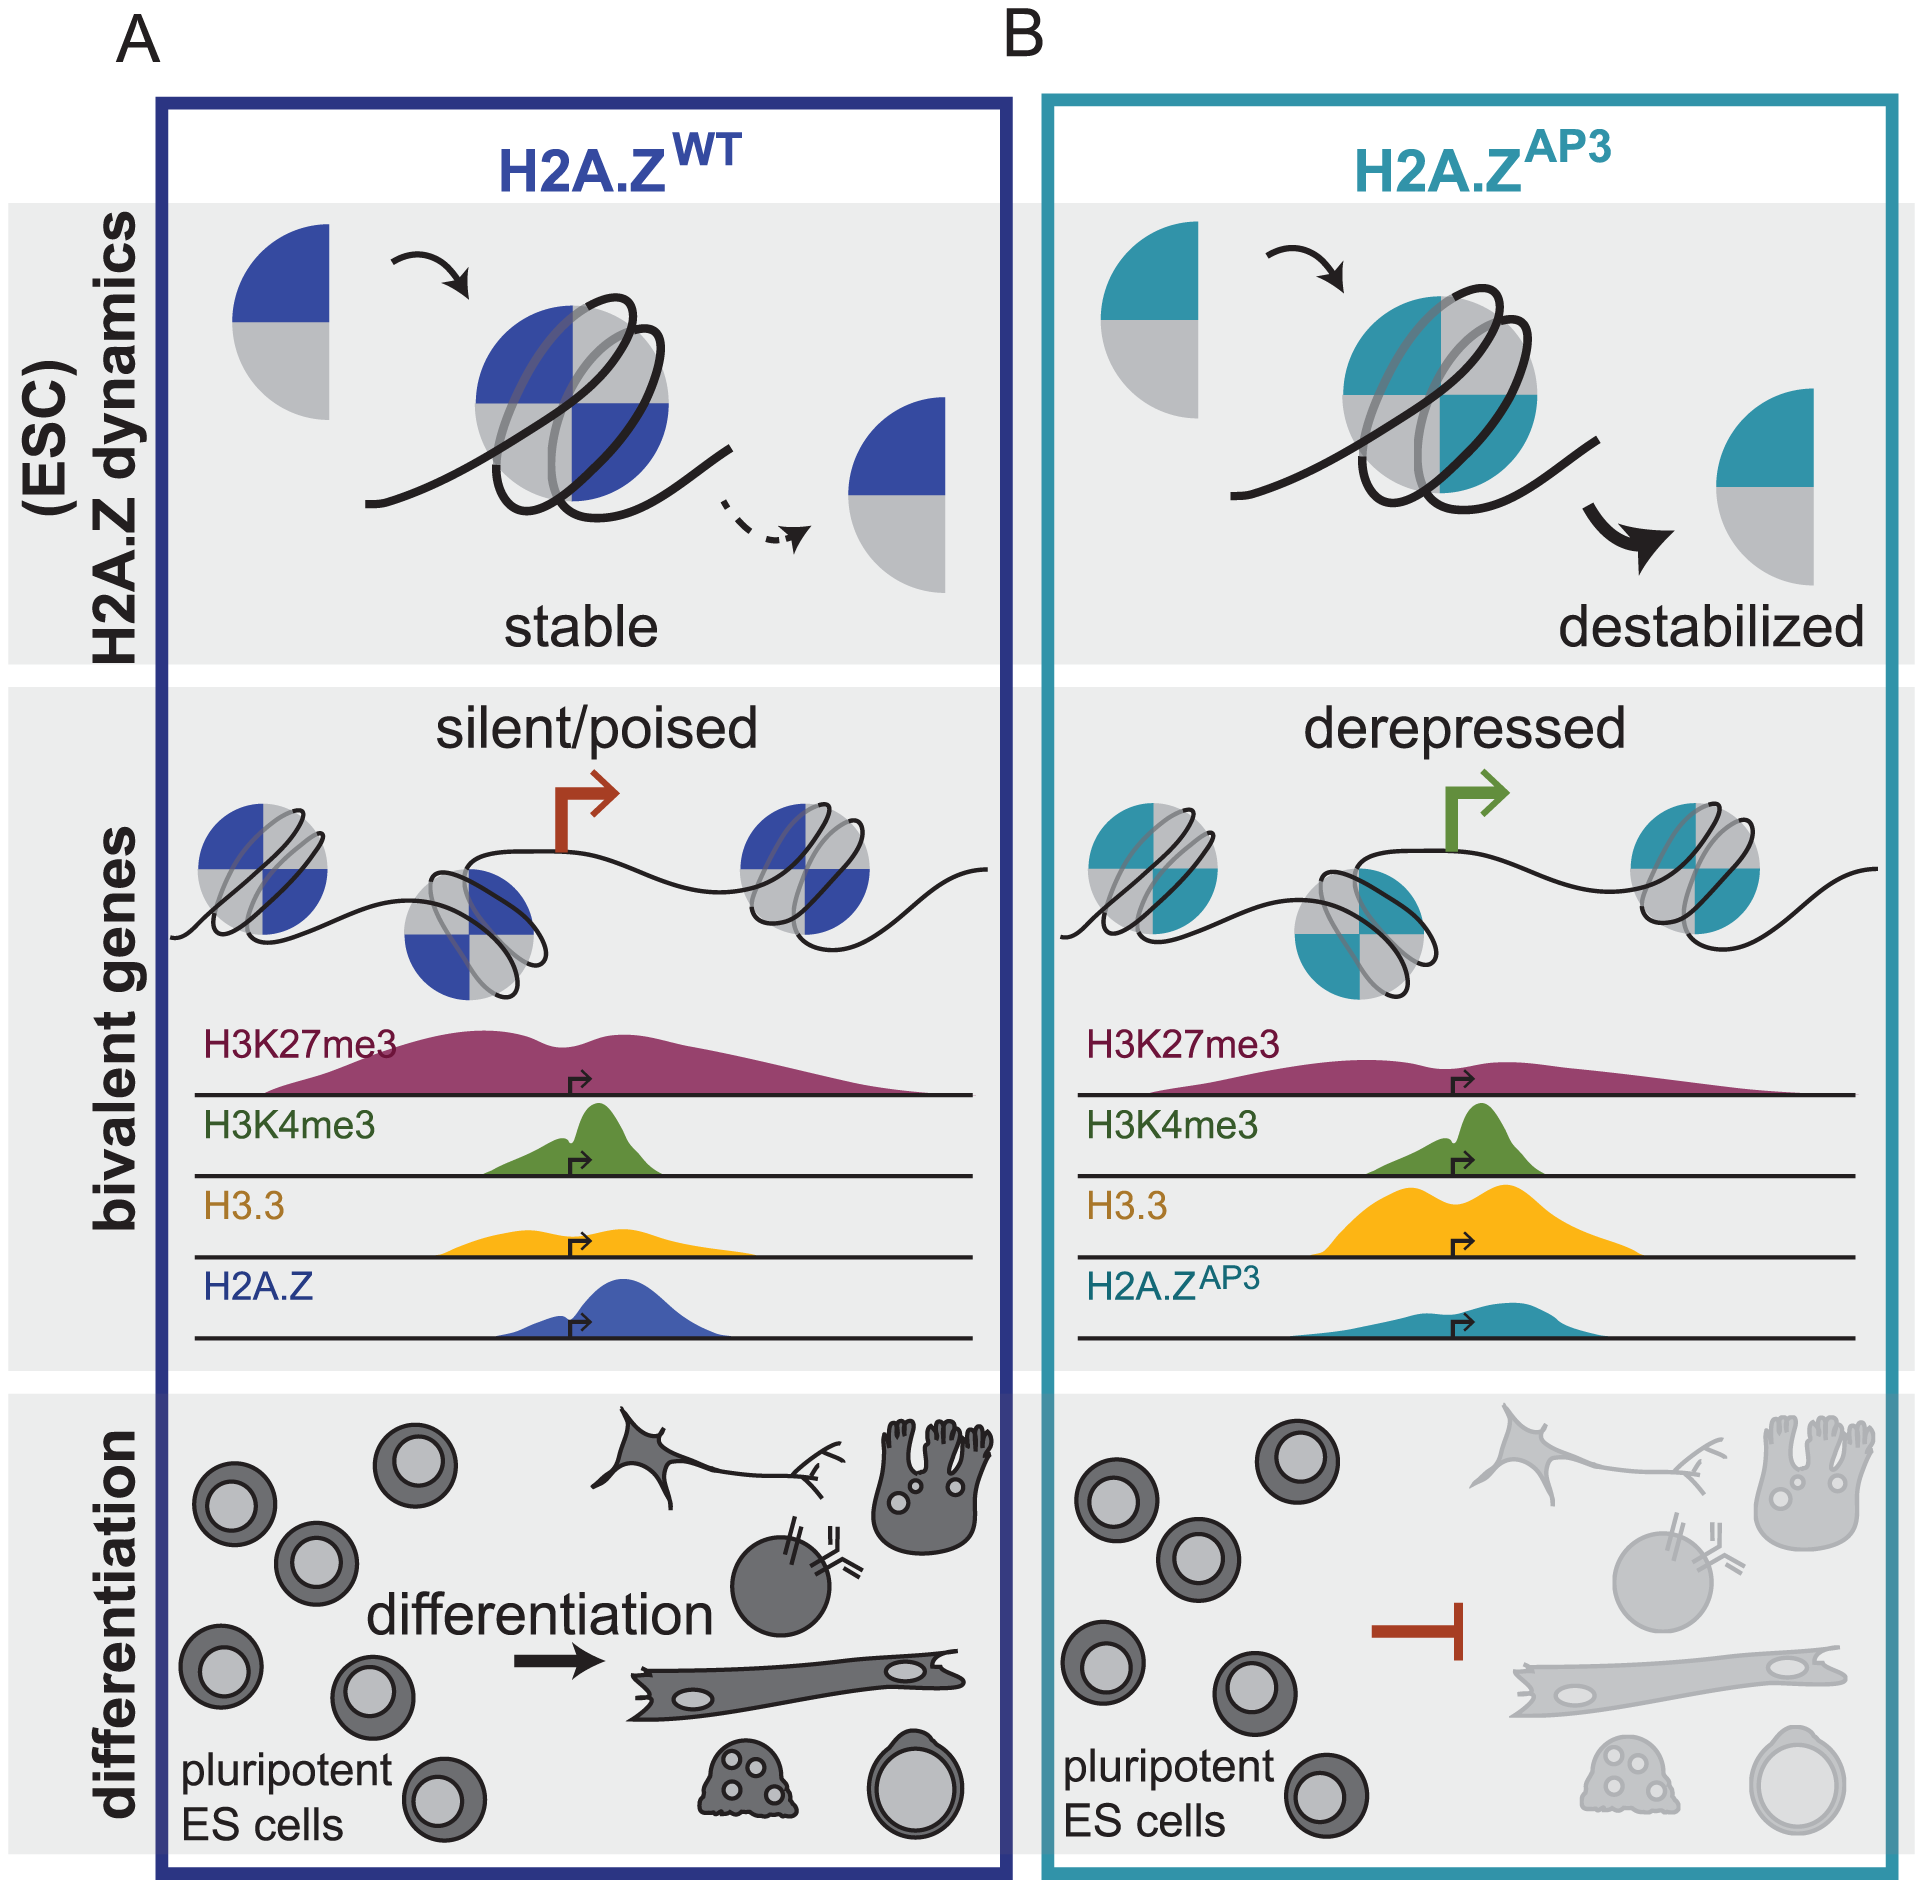 H2A.Z acidic patch couples chromatin dynamics to gene expression regulation during ESC differentiation.